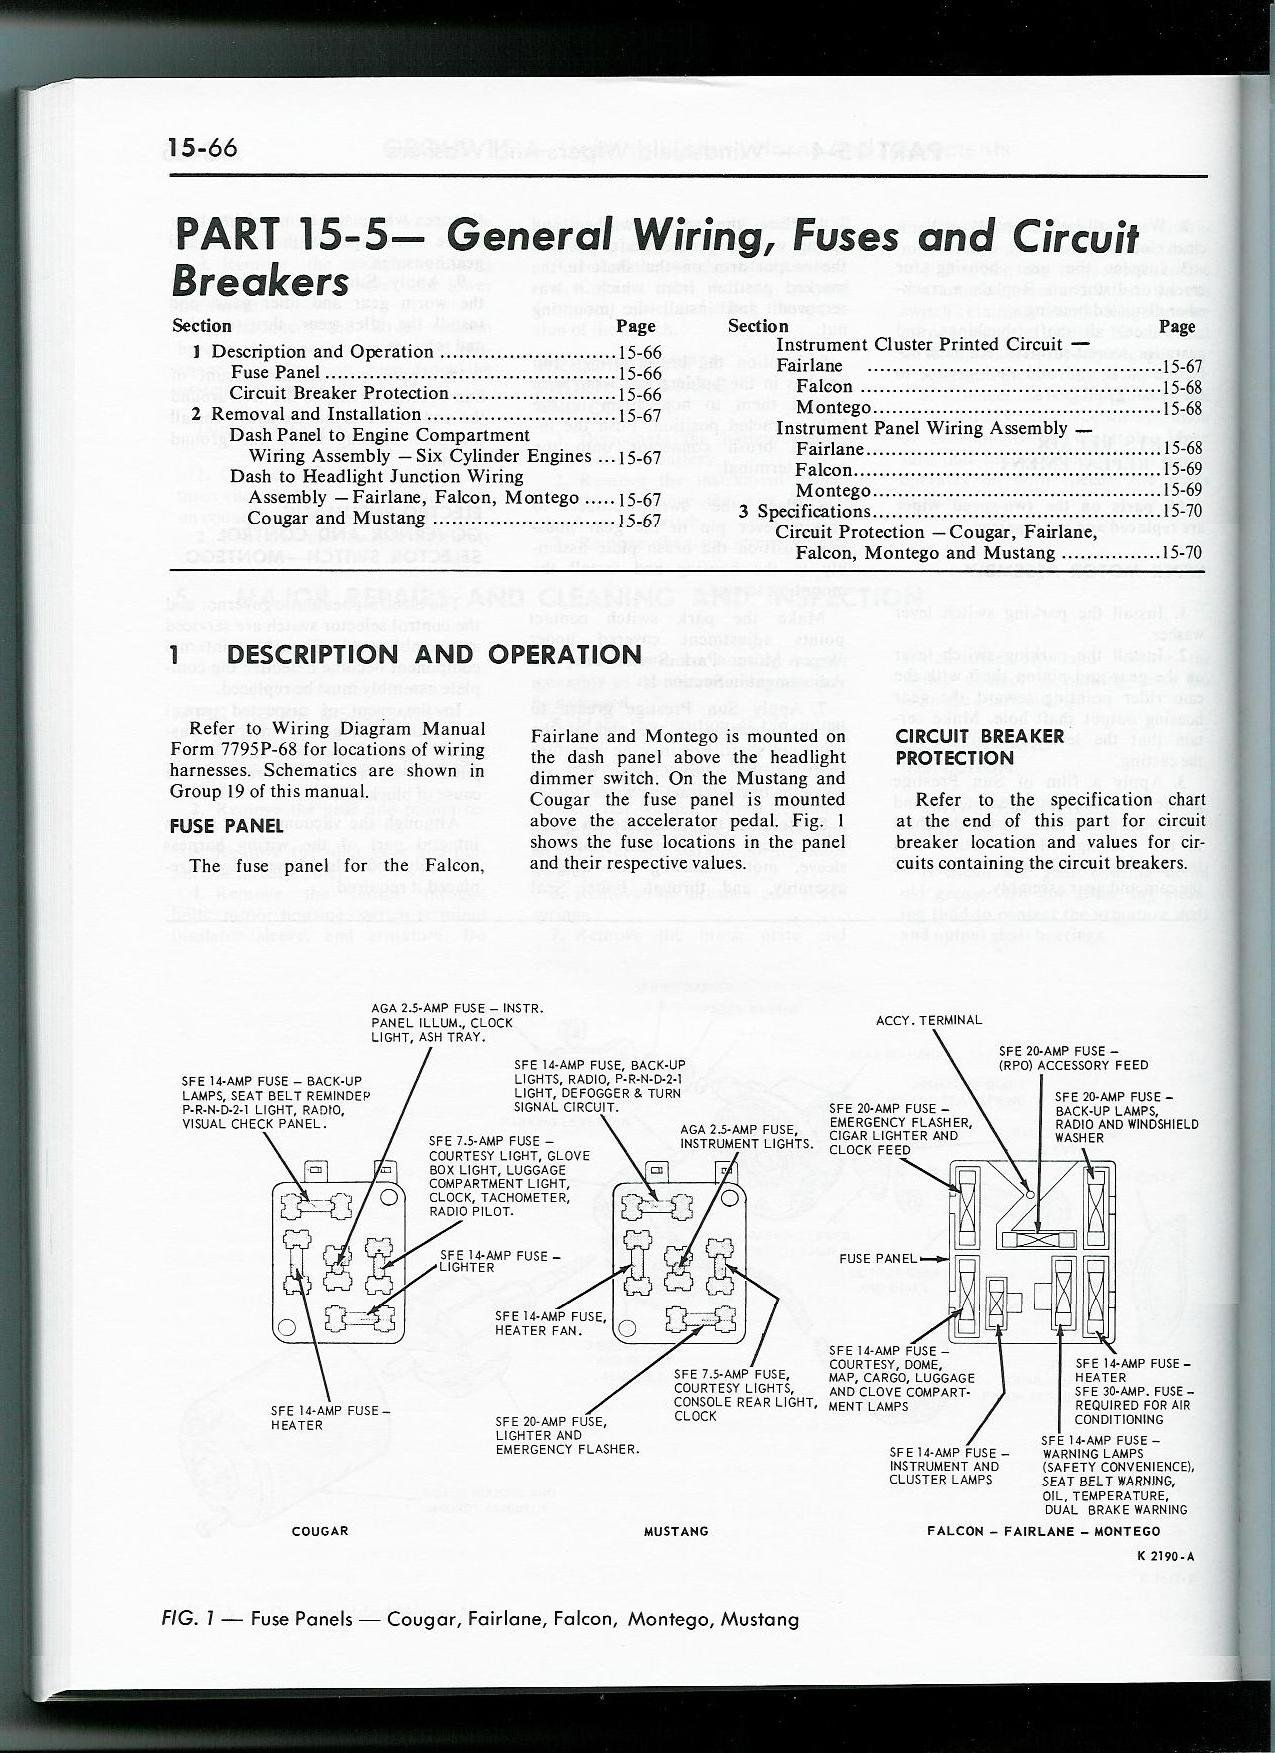 1969 Mustang Fastback Fuse Box Diagram Wiring Diagram View A View A Zaafran It